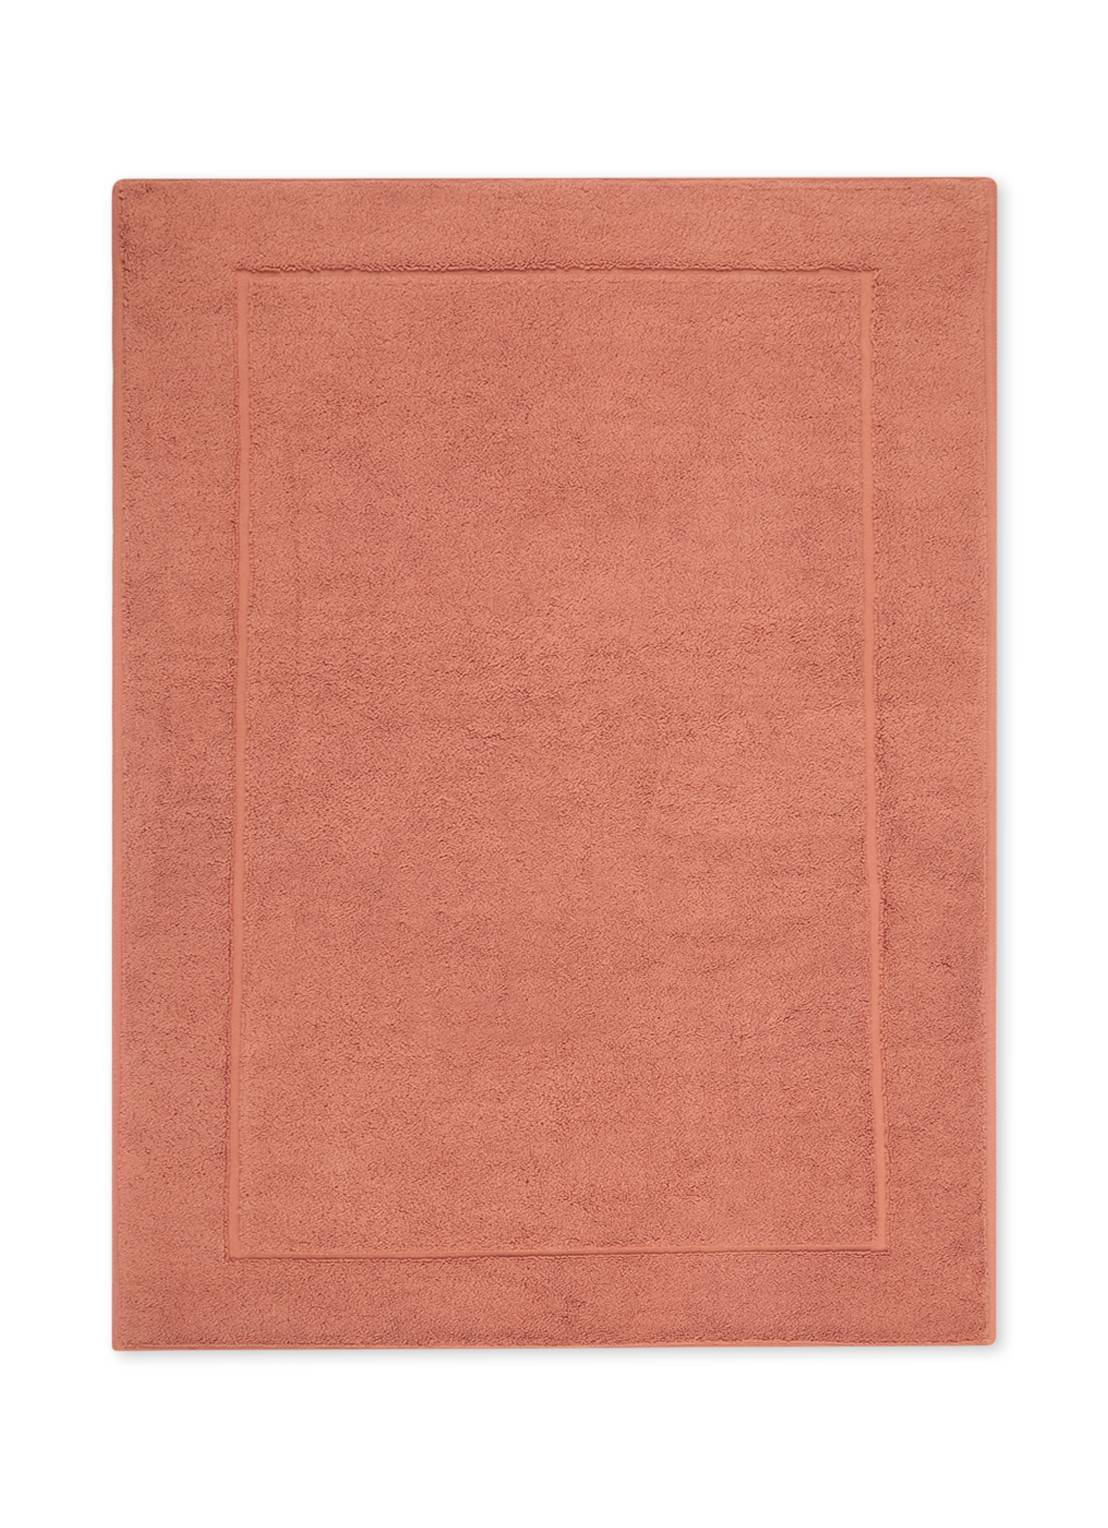 aquanova Tapis de bain en coton égyptien LONDON - Rose saumon